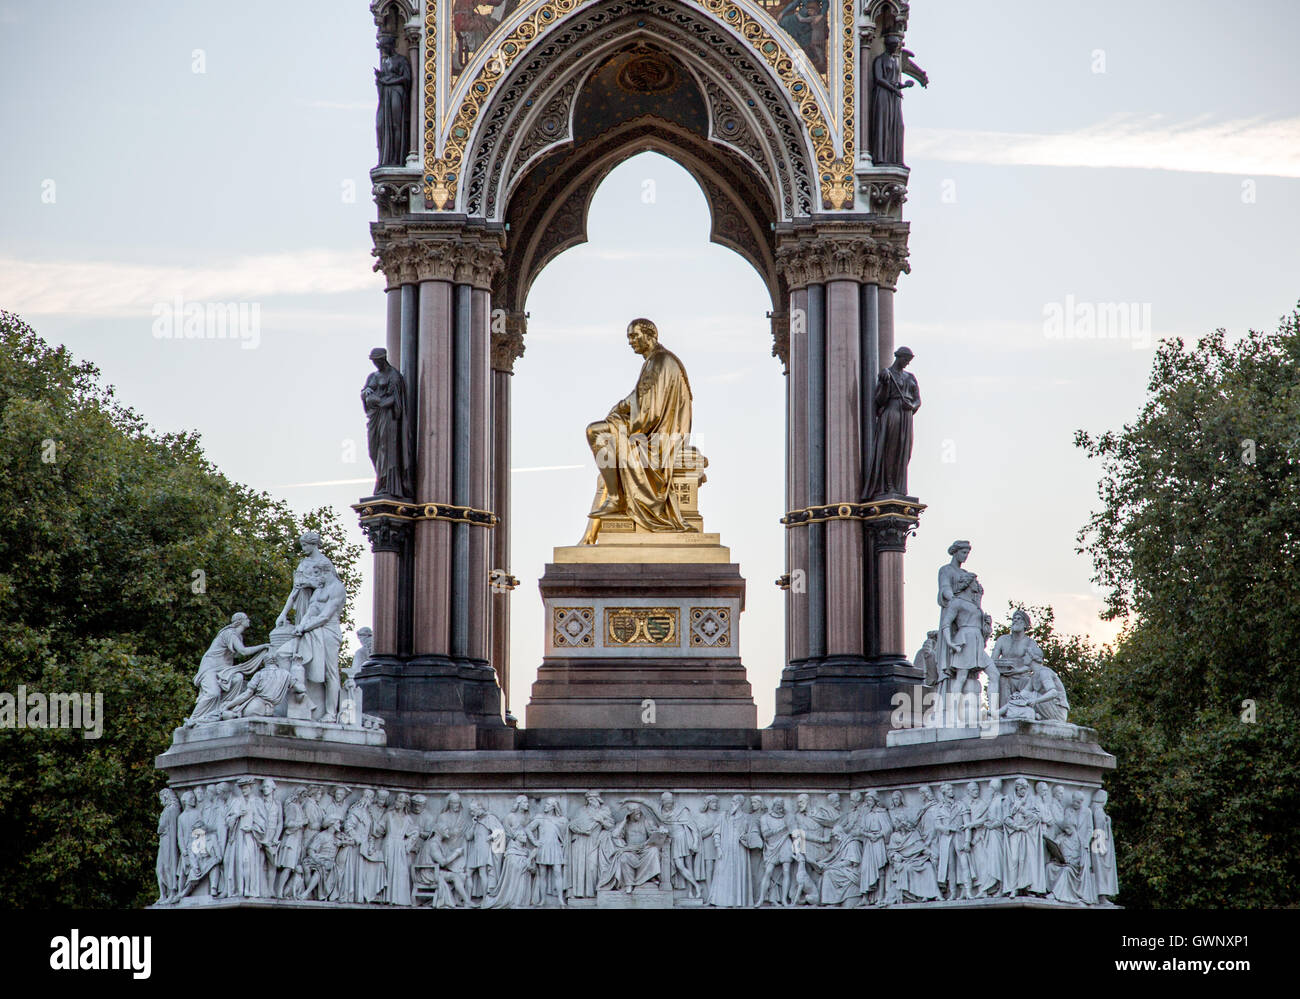 The Albert Memorial Kensington London UK - Stock Image